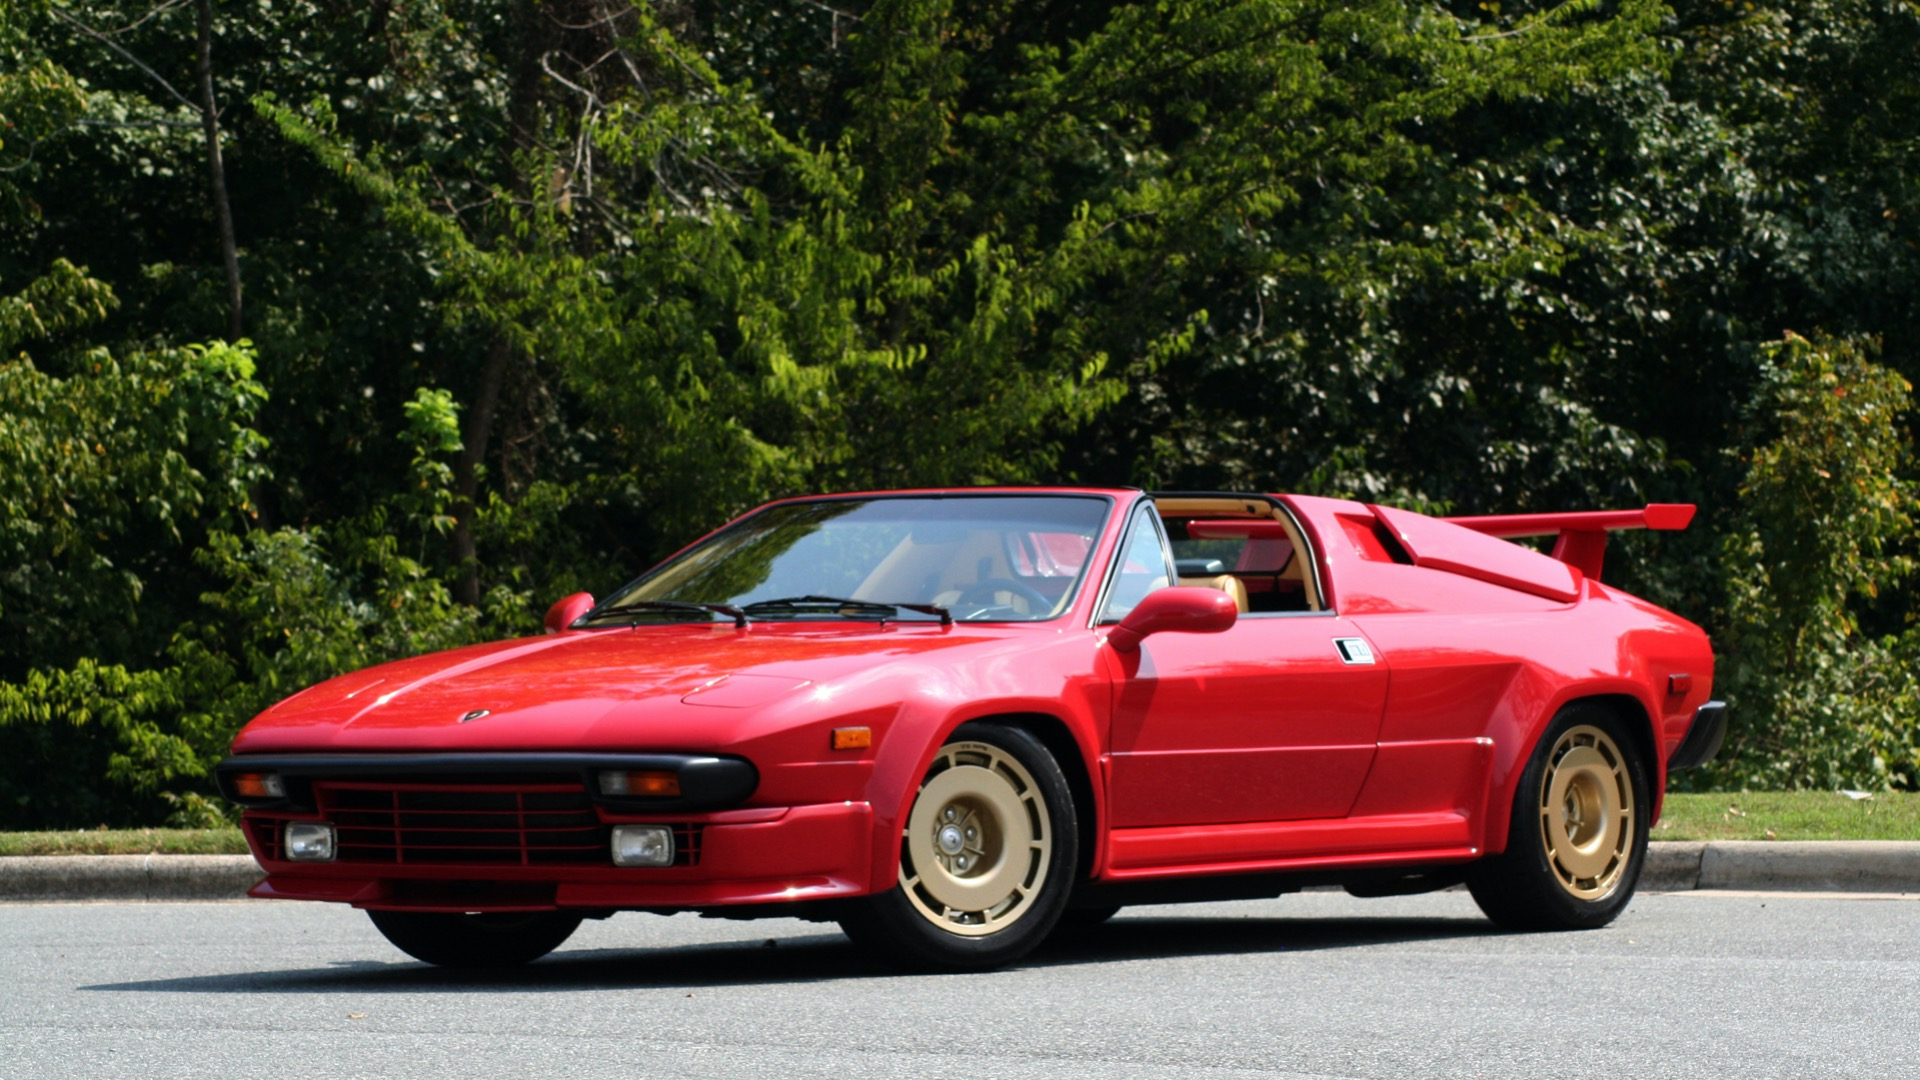 Used 1988 Lamborghini Jalpa 3.5 / 5-Speed Man / Low Miles / Excellent Condition for sale $108,995 at Formula Imports in Charlotte NC 28227 1